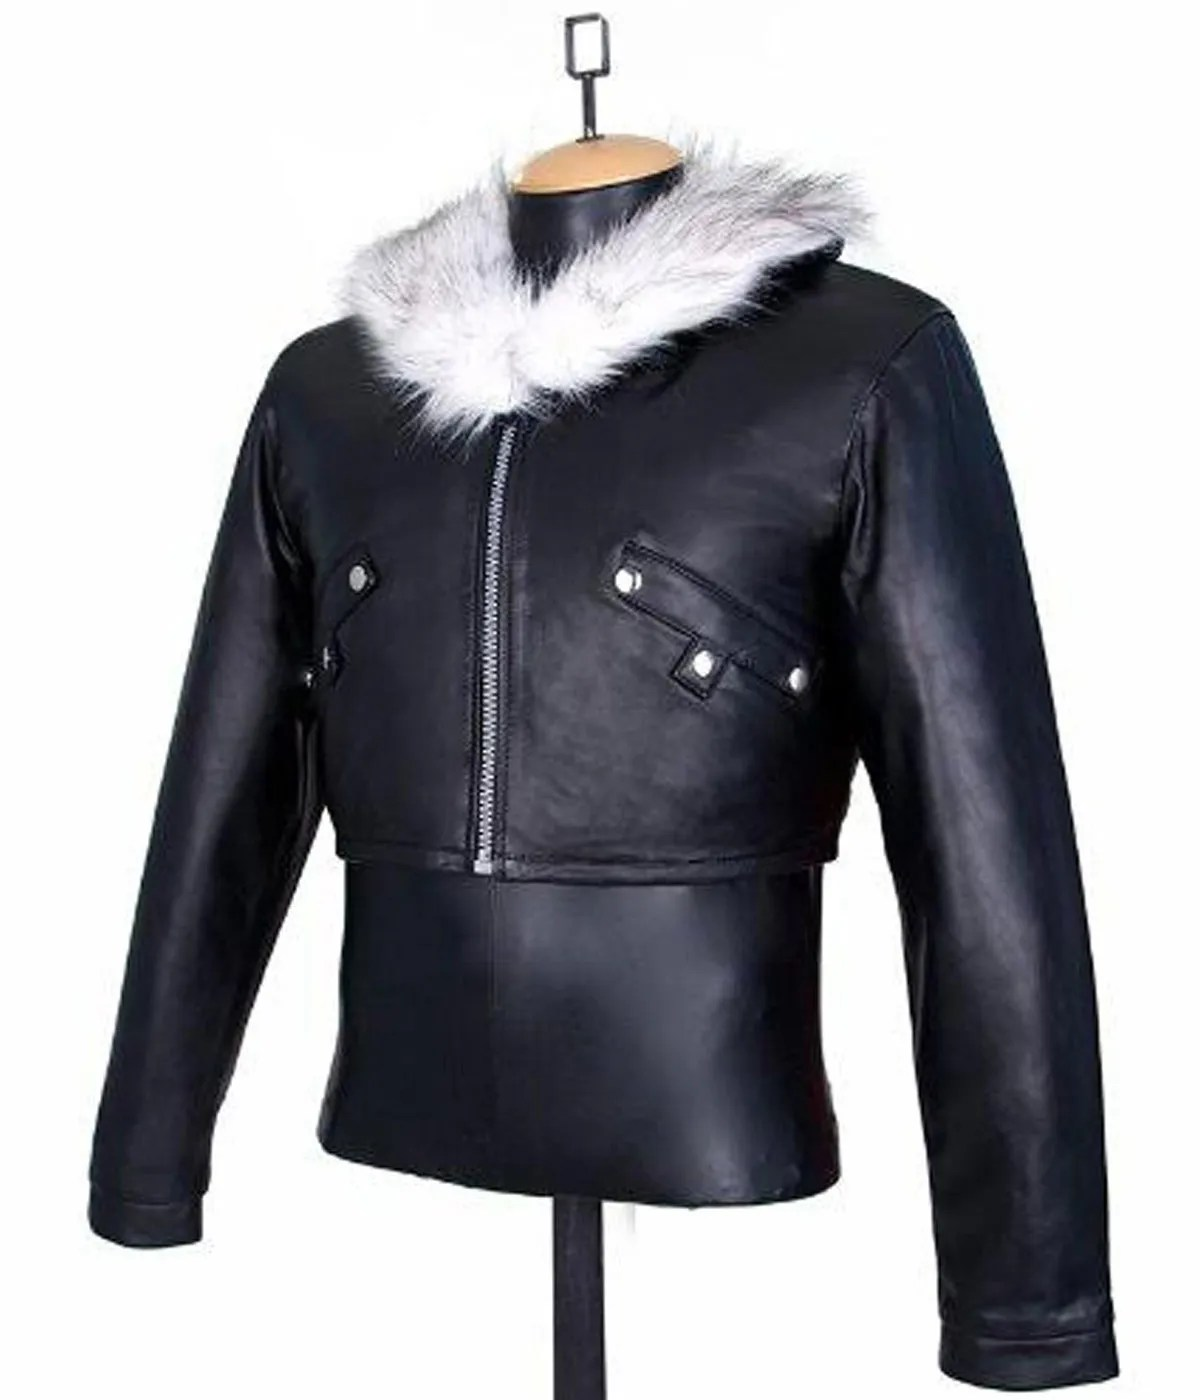 final-fantasy-squall-leonhart-leather-jacket